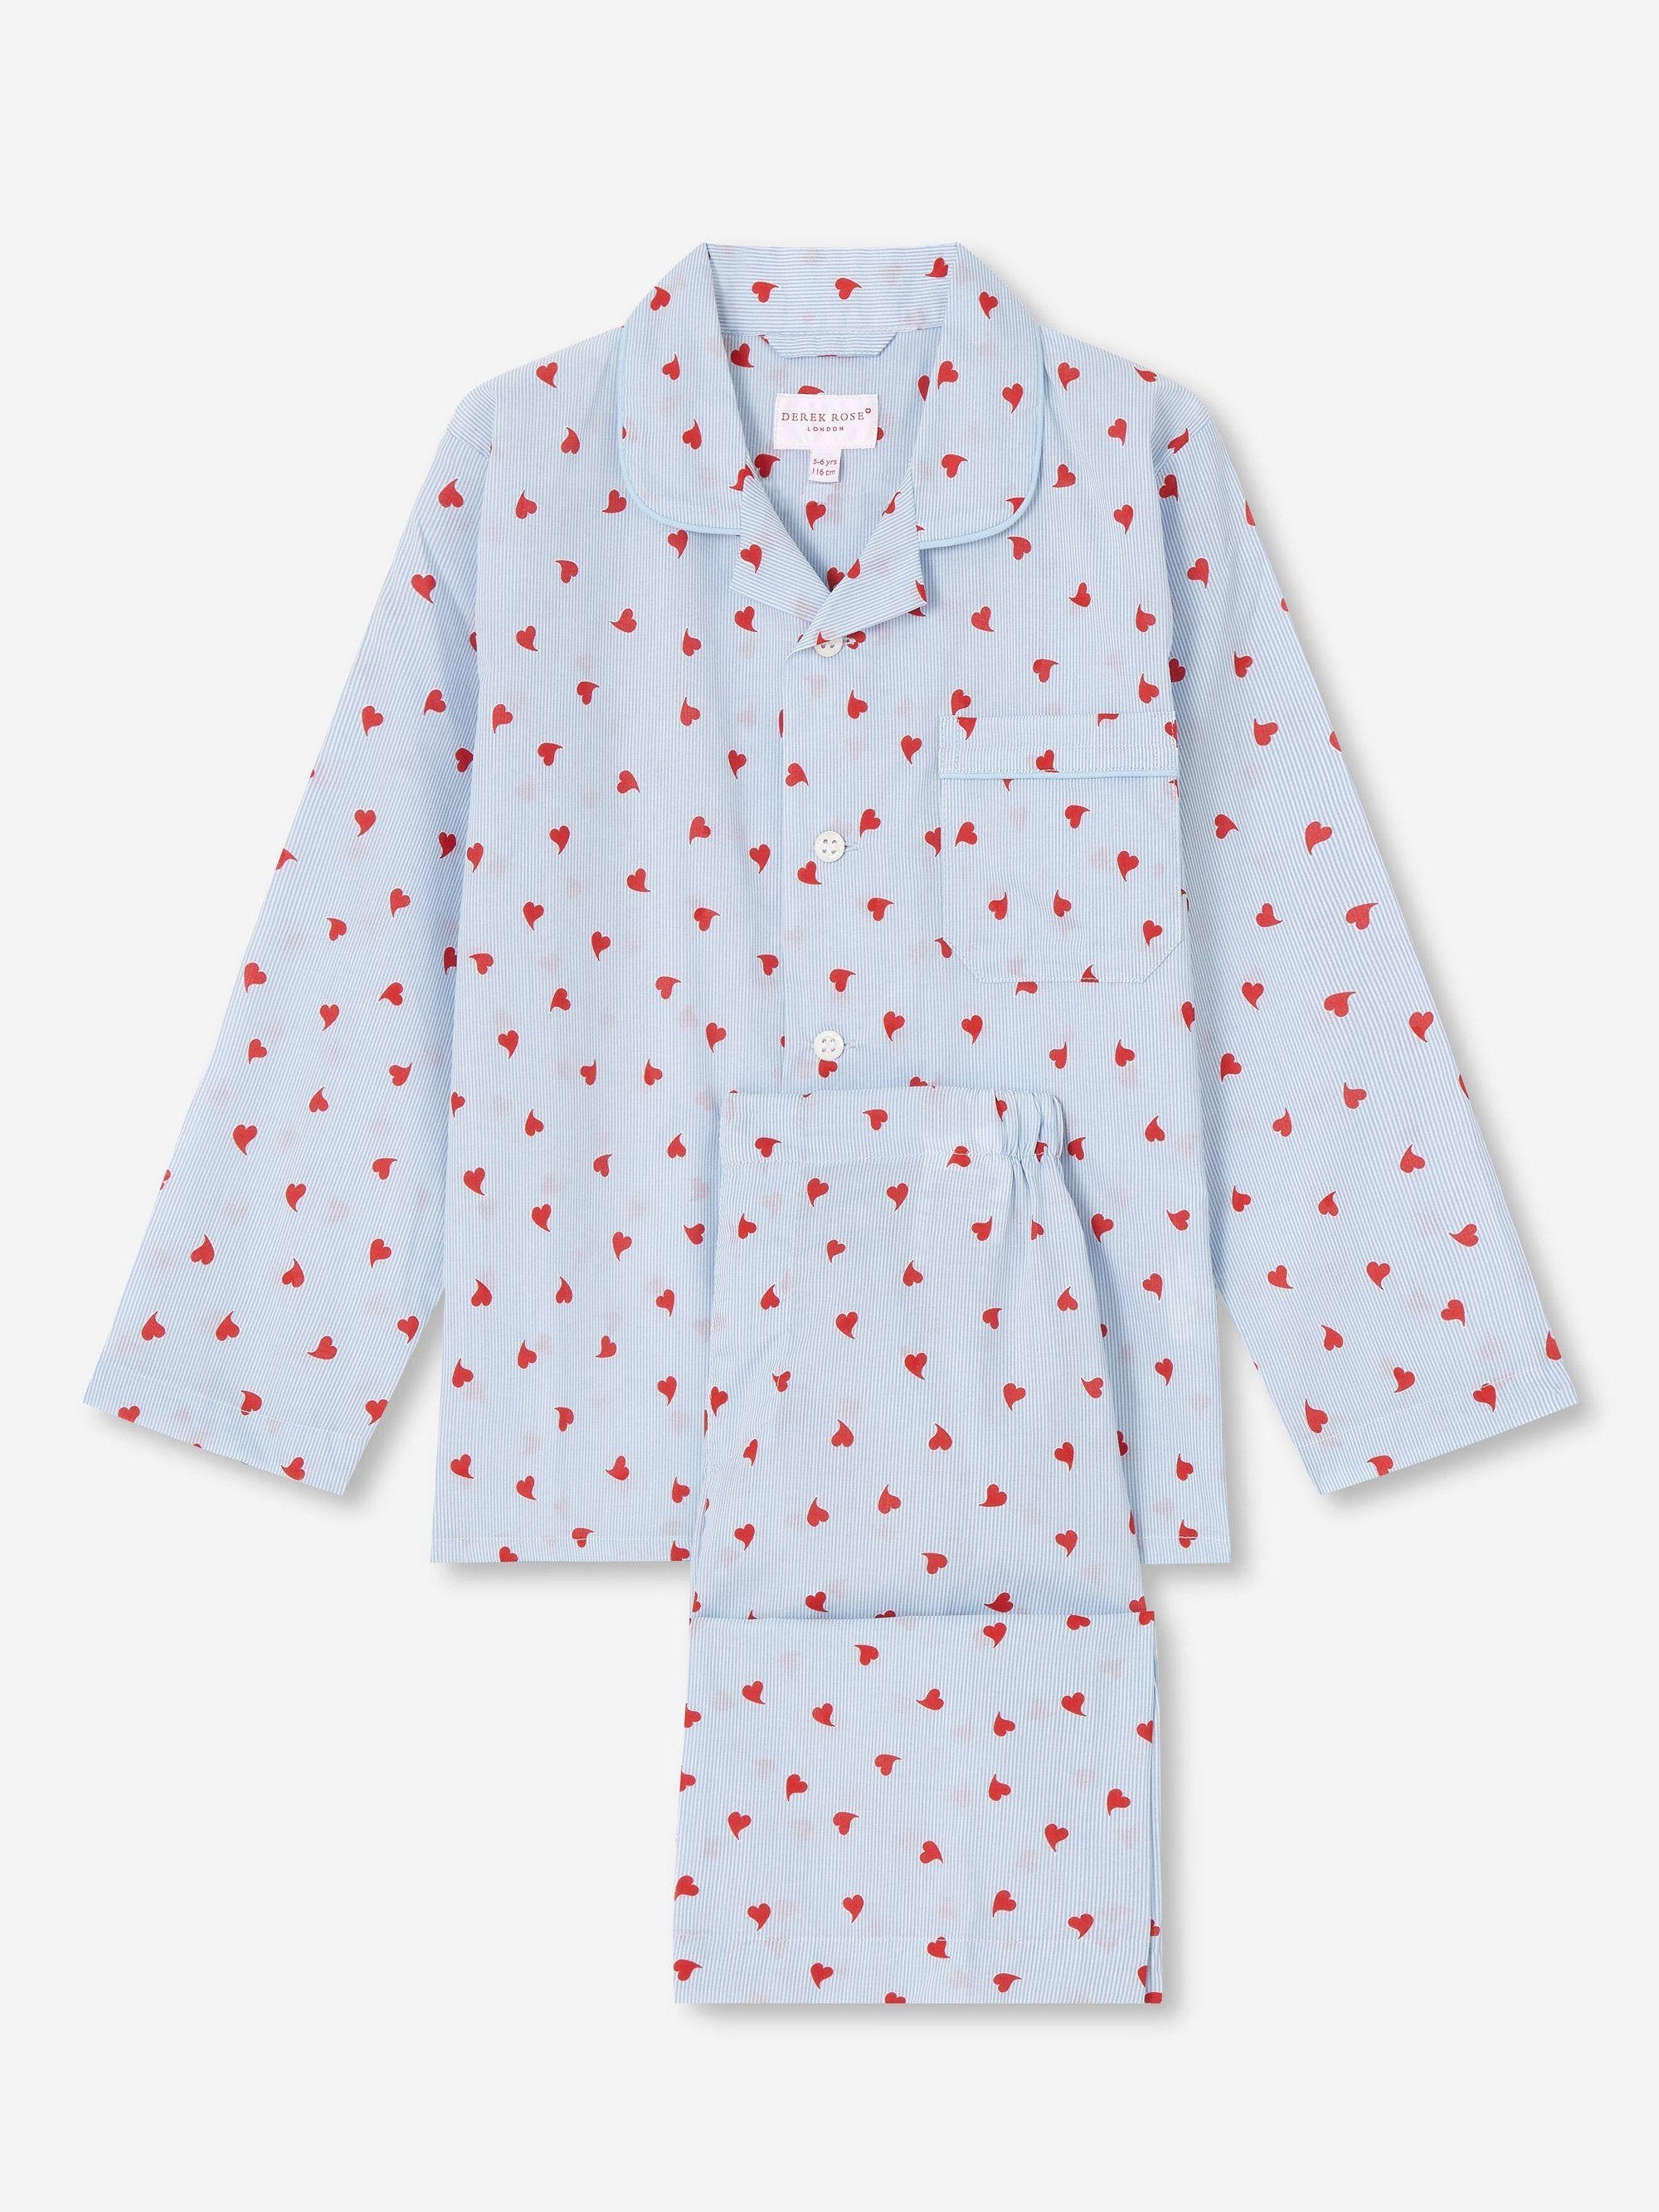 Kids' Pyjamas Nelson 75 Cotton Batiste Blue